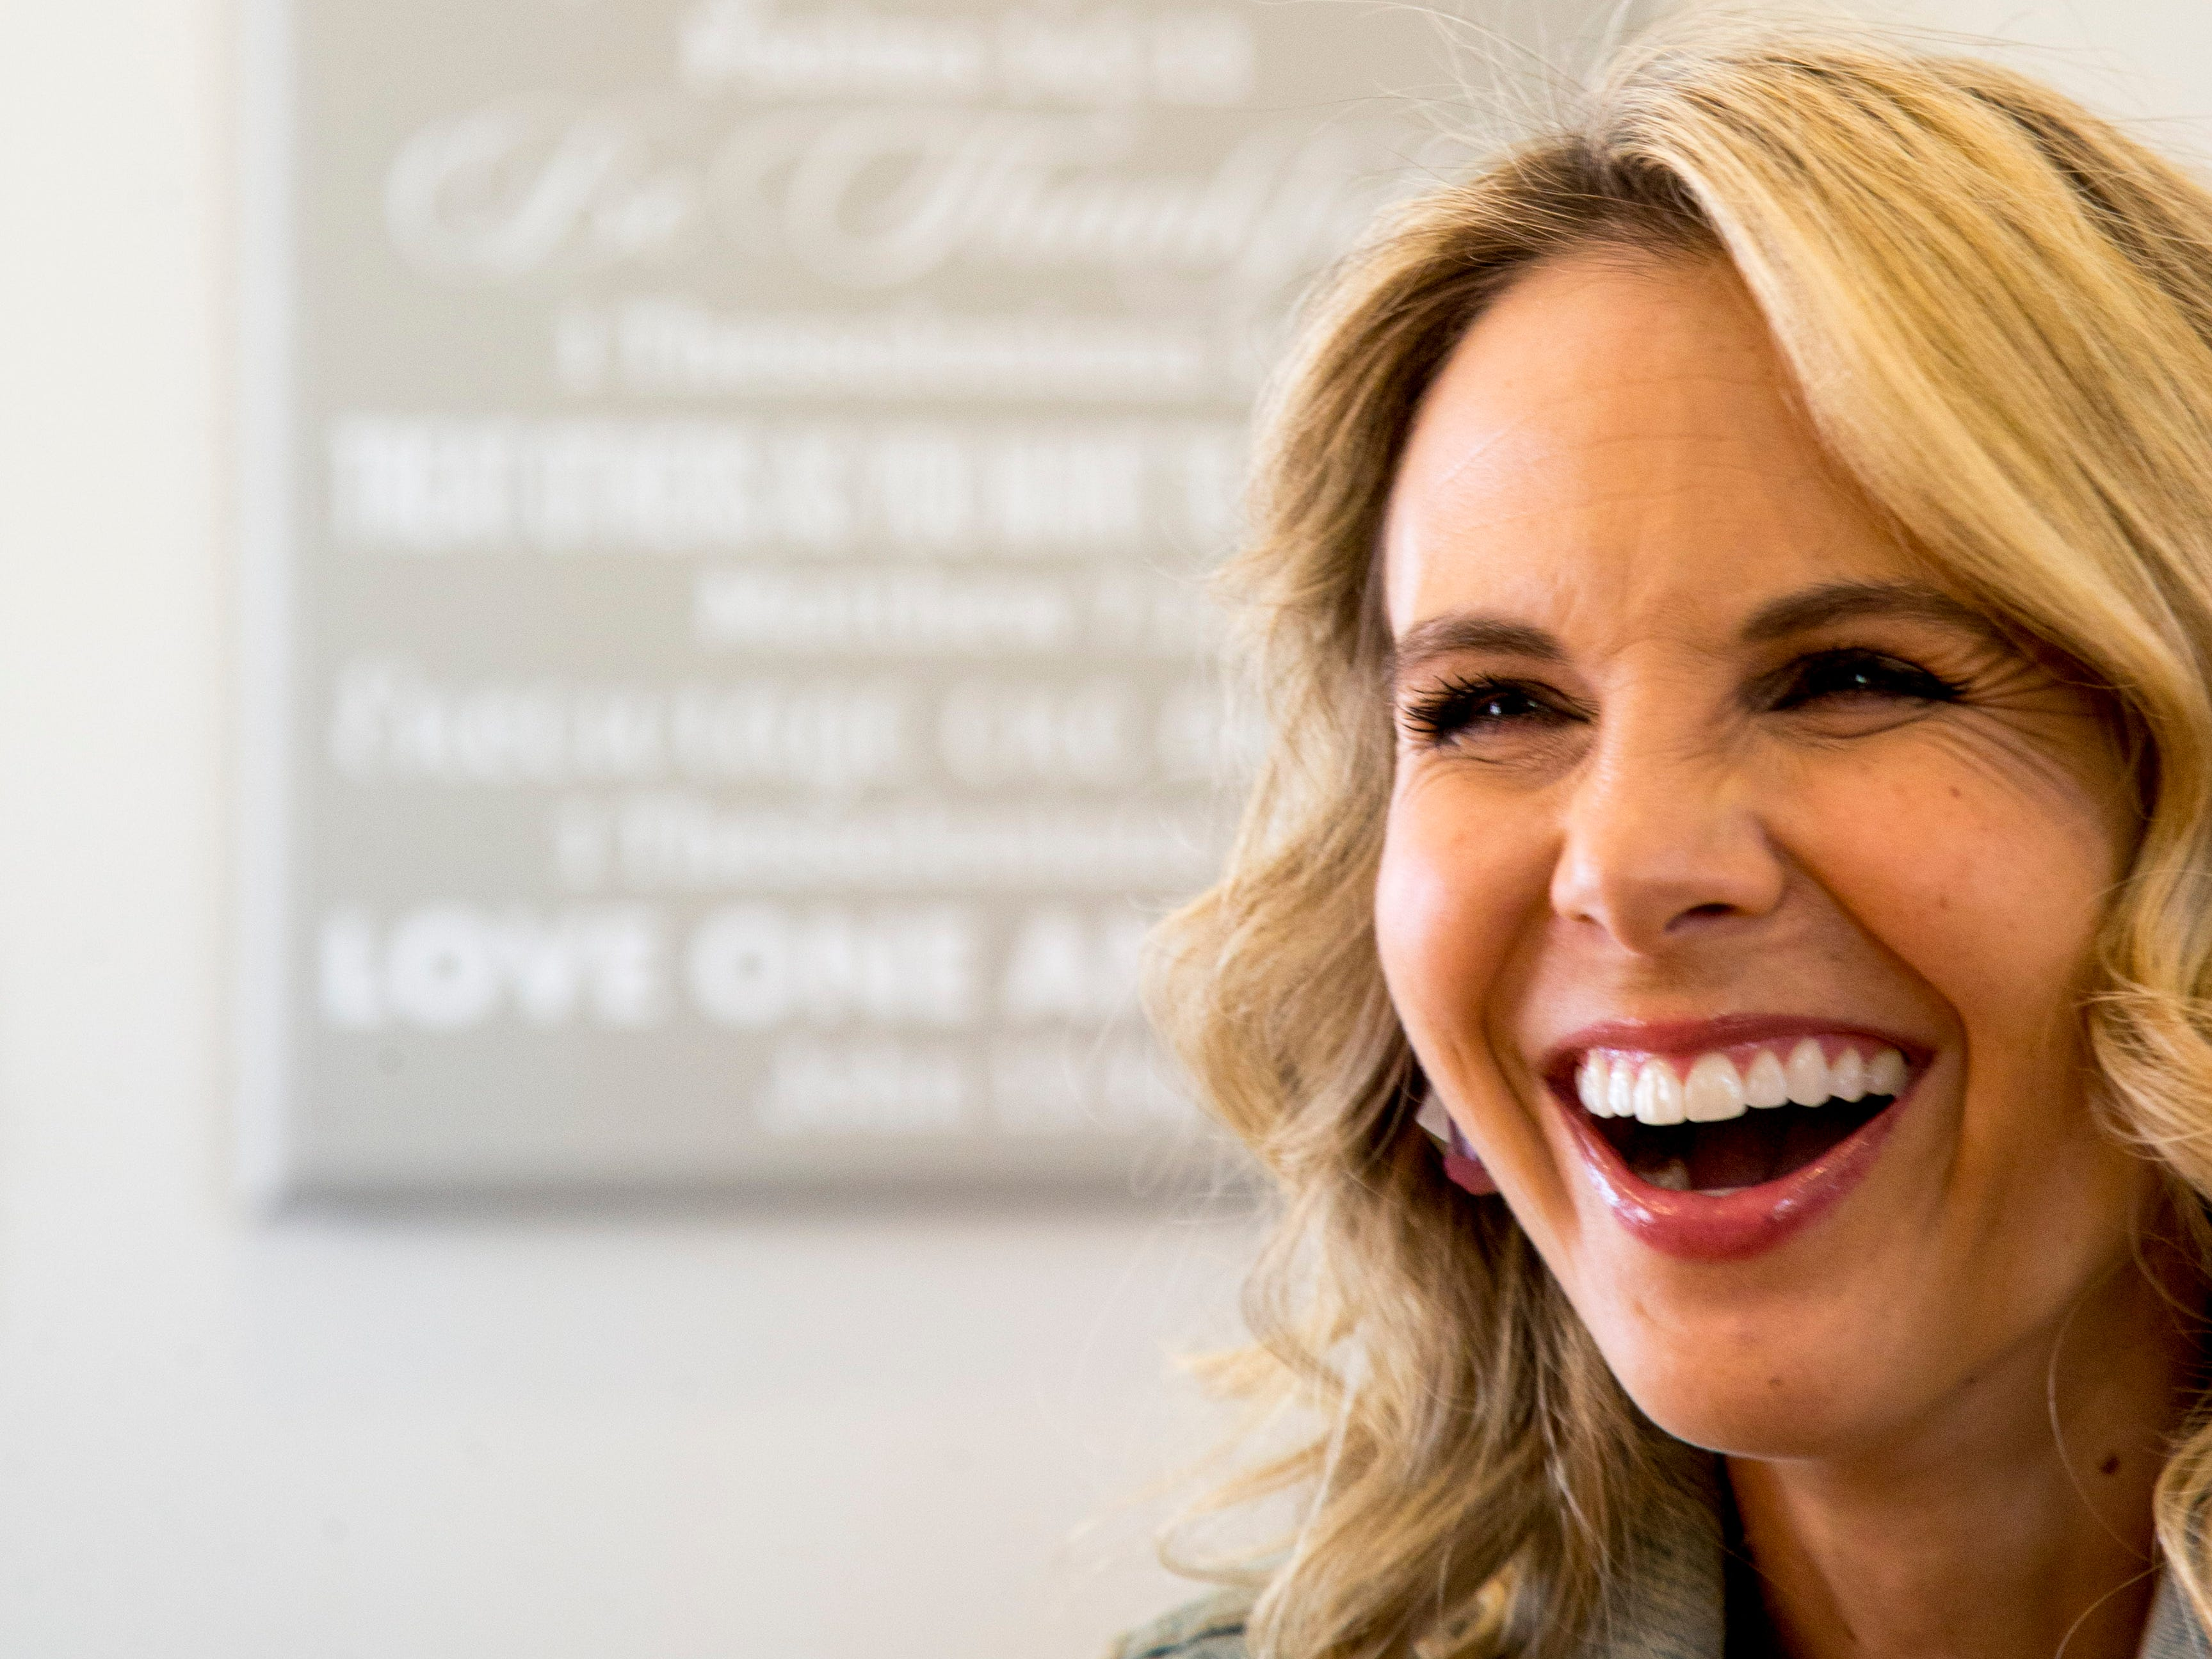 Elisabeth Hasselbeck -- pictured here in her Nashville home -- says ABC offered her her job back on The View last summer. She said she turned it down, in part, because she didn't want to move her family out of Middle Tennessee